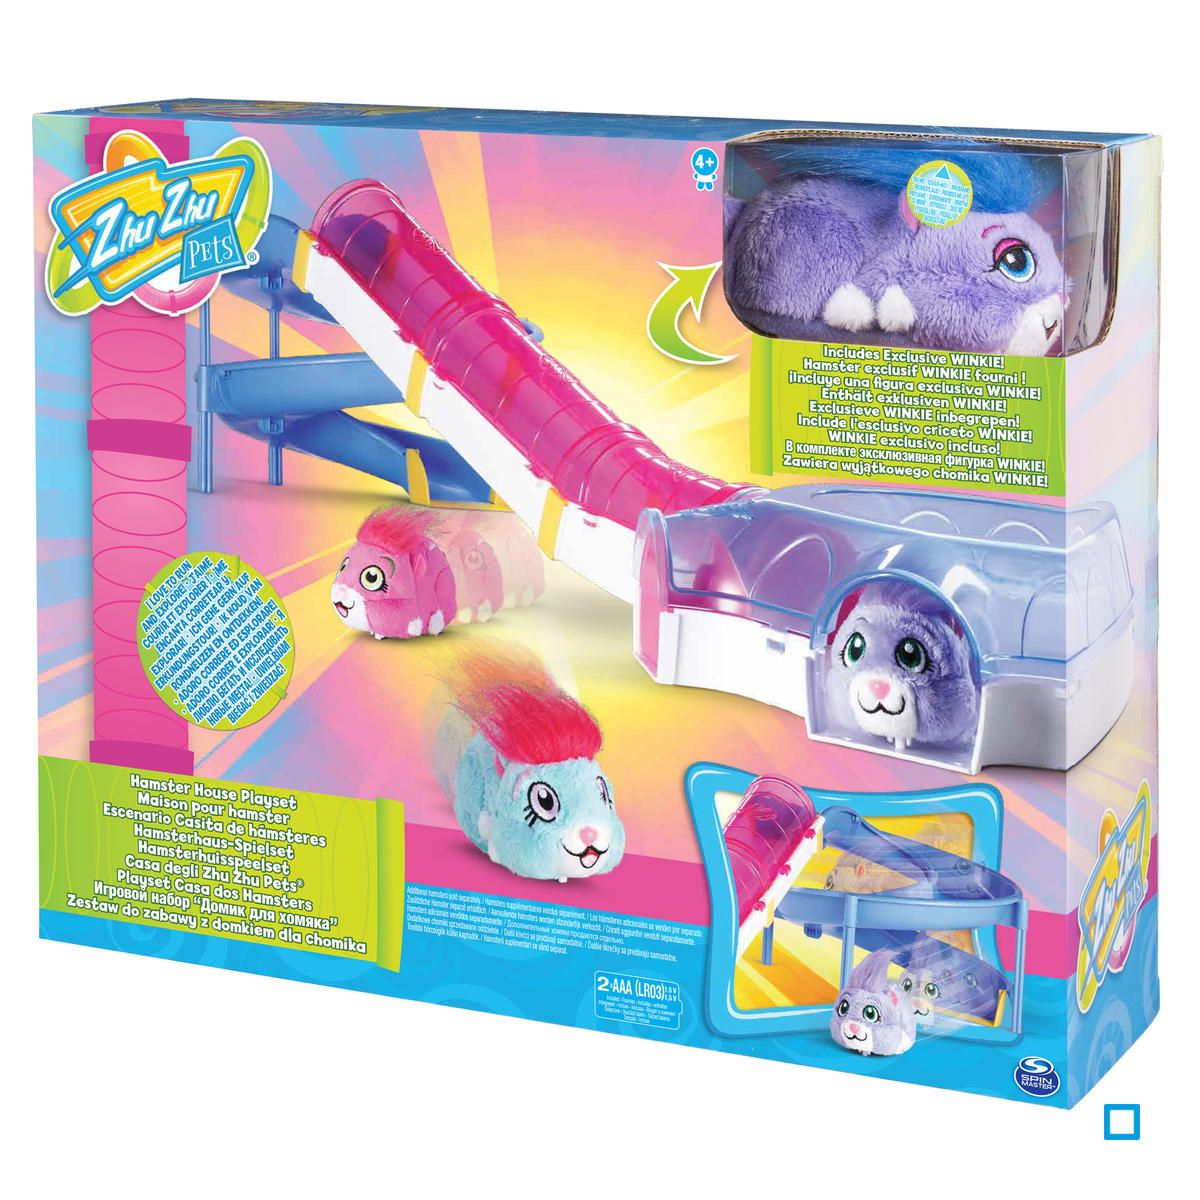 Hamster Carrier with Handle and Door Assorted Color Fits